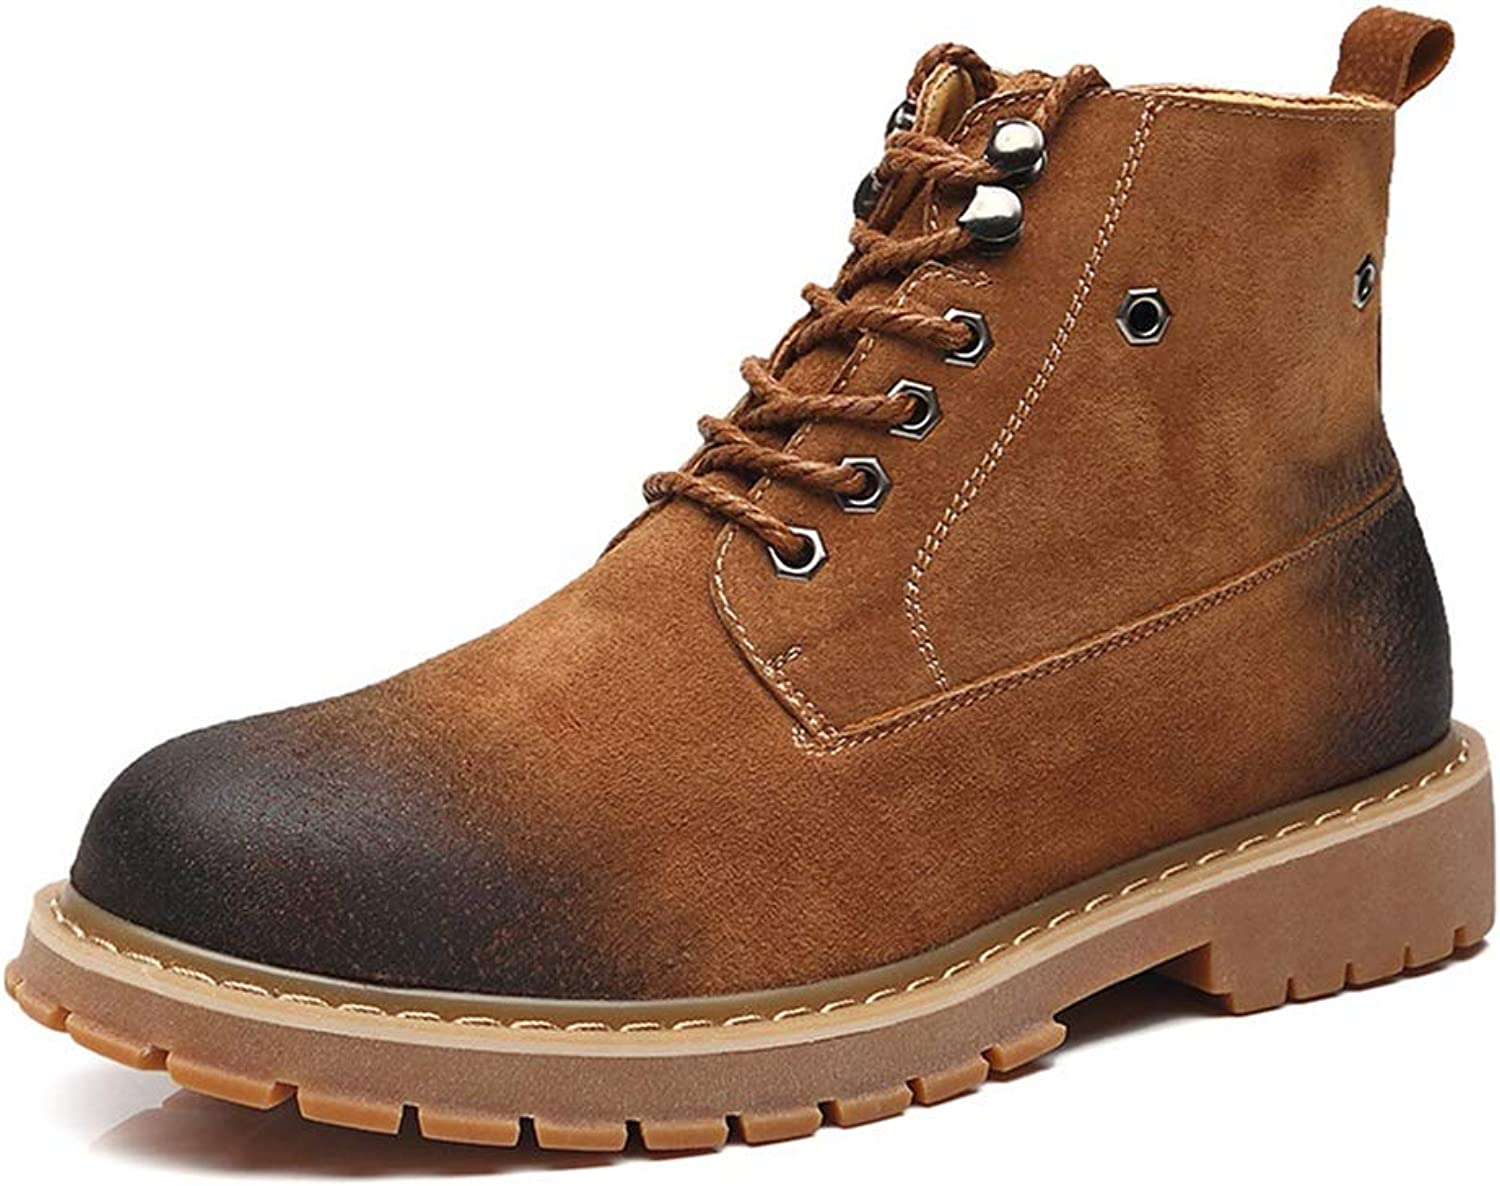 Mens Casual Lace up Chukka Boots Soft Sole Durable Non Slip Comfort Boots (color   Brown, Size   CA 9)